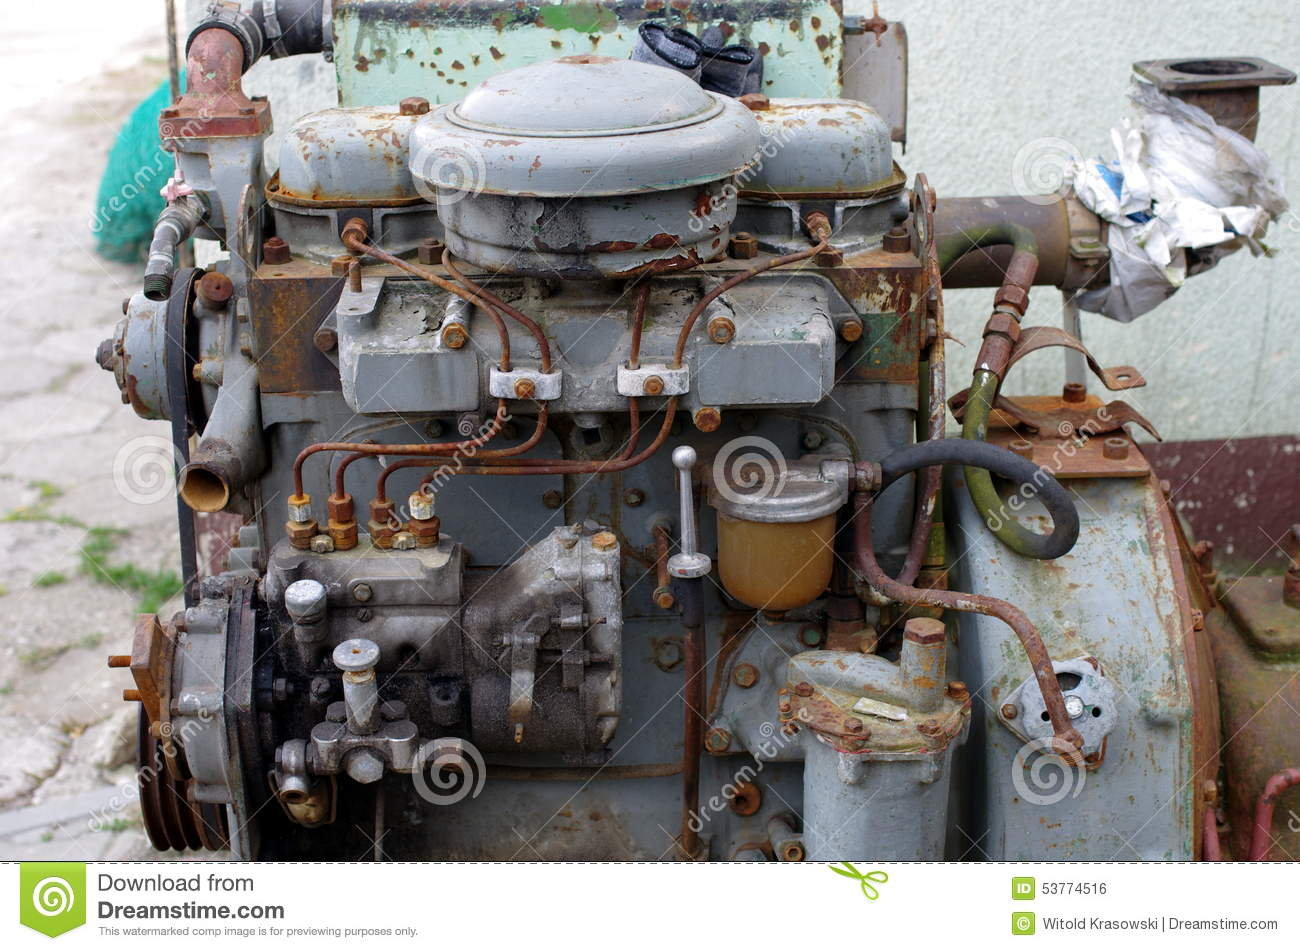 Click image for larger version  Name:old-engine-rusty-diesel-pump-53774516.jpg Views:127 Size:173.8 KB ID:125383